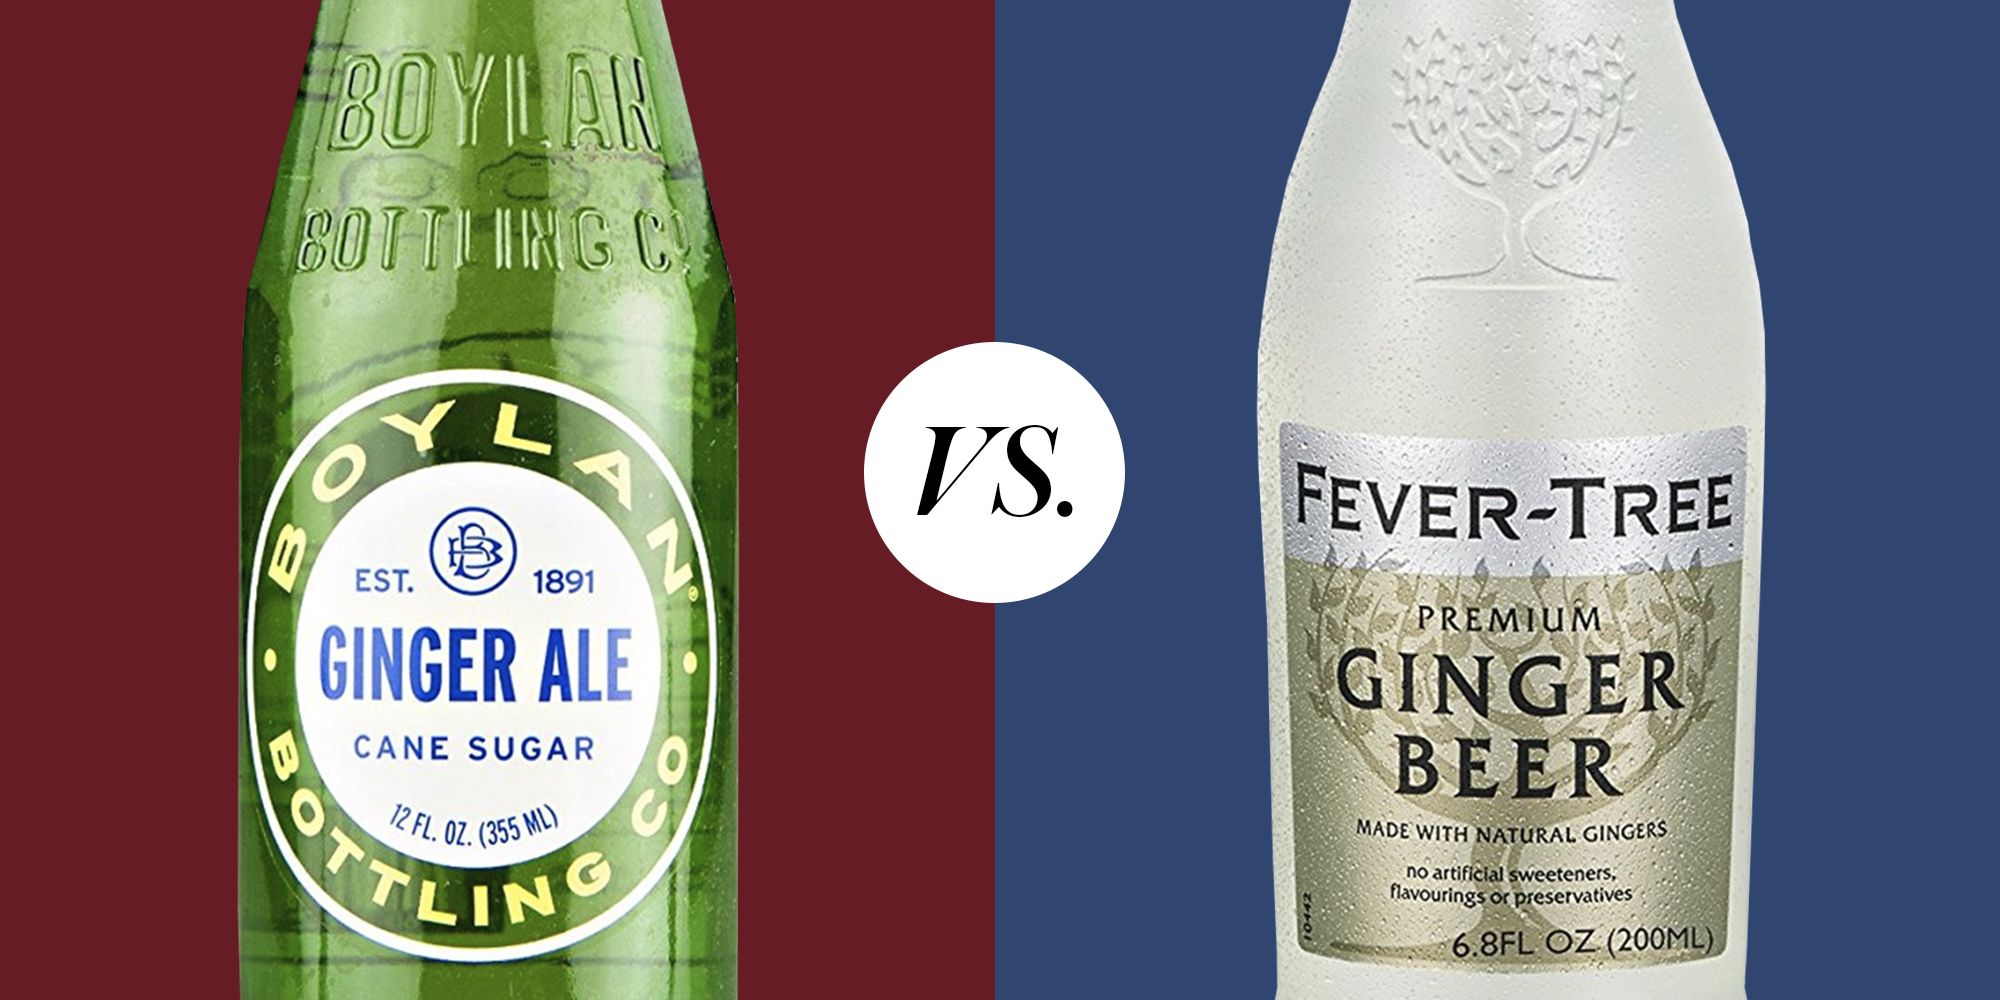 How to make ginger beer less spicy